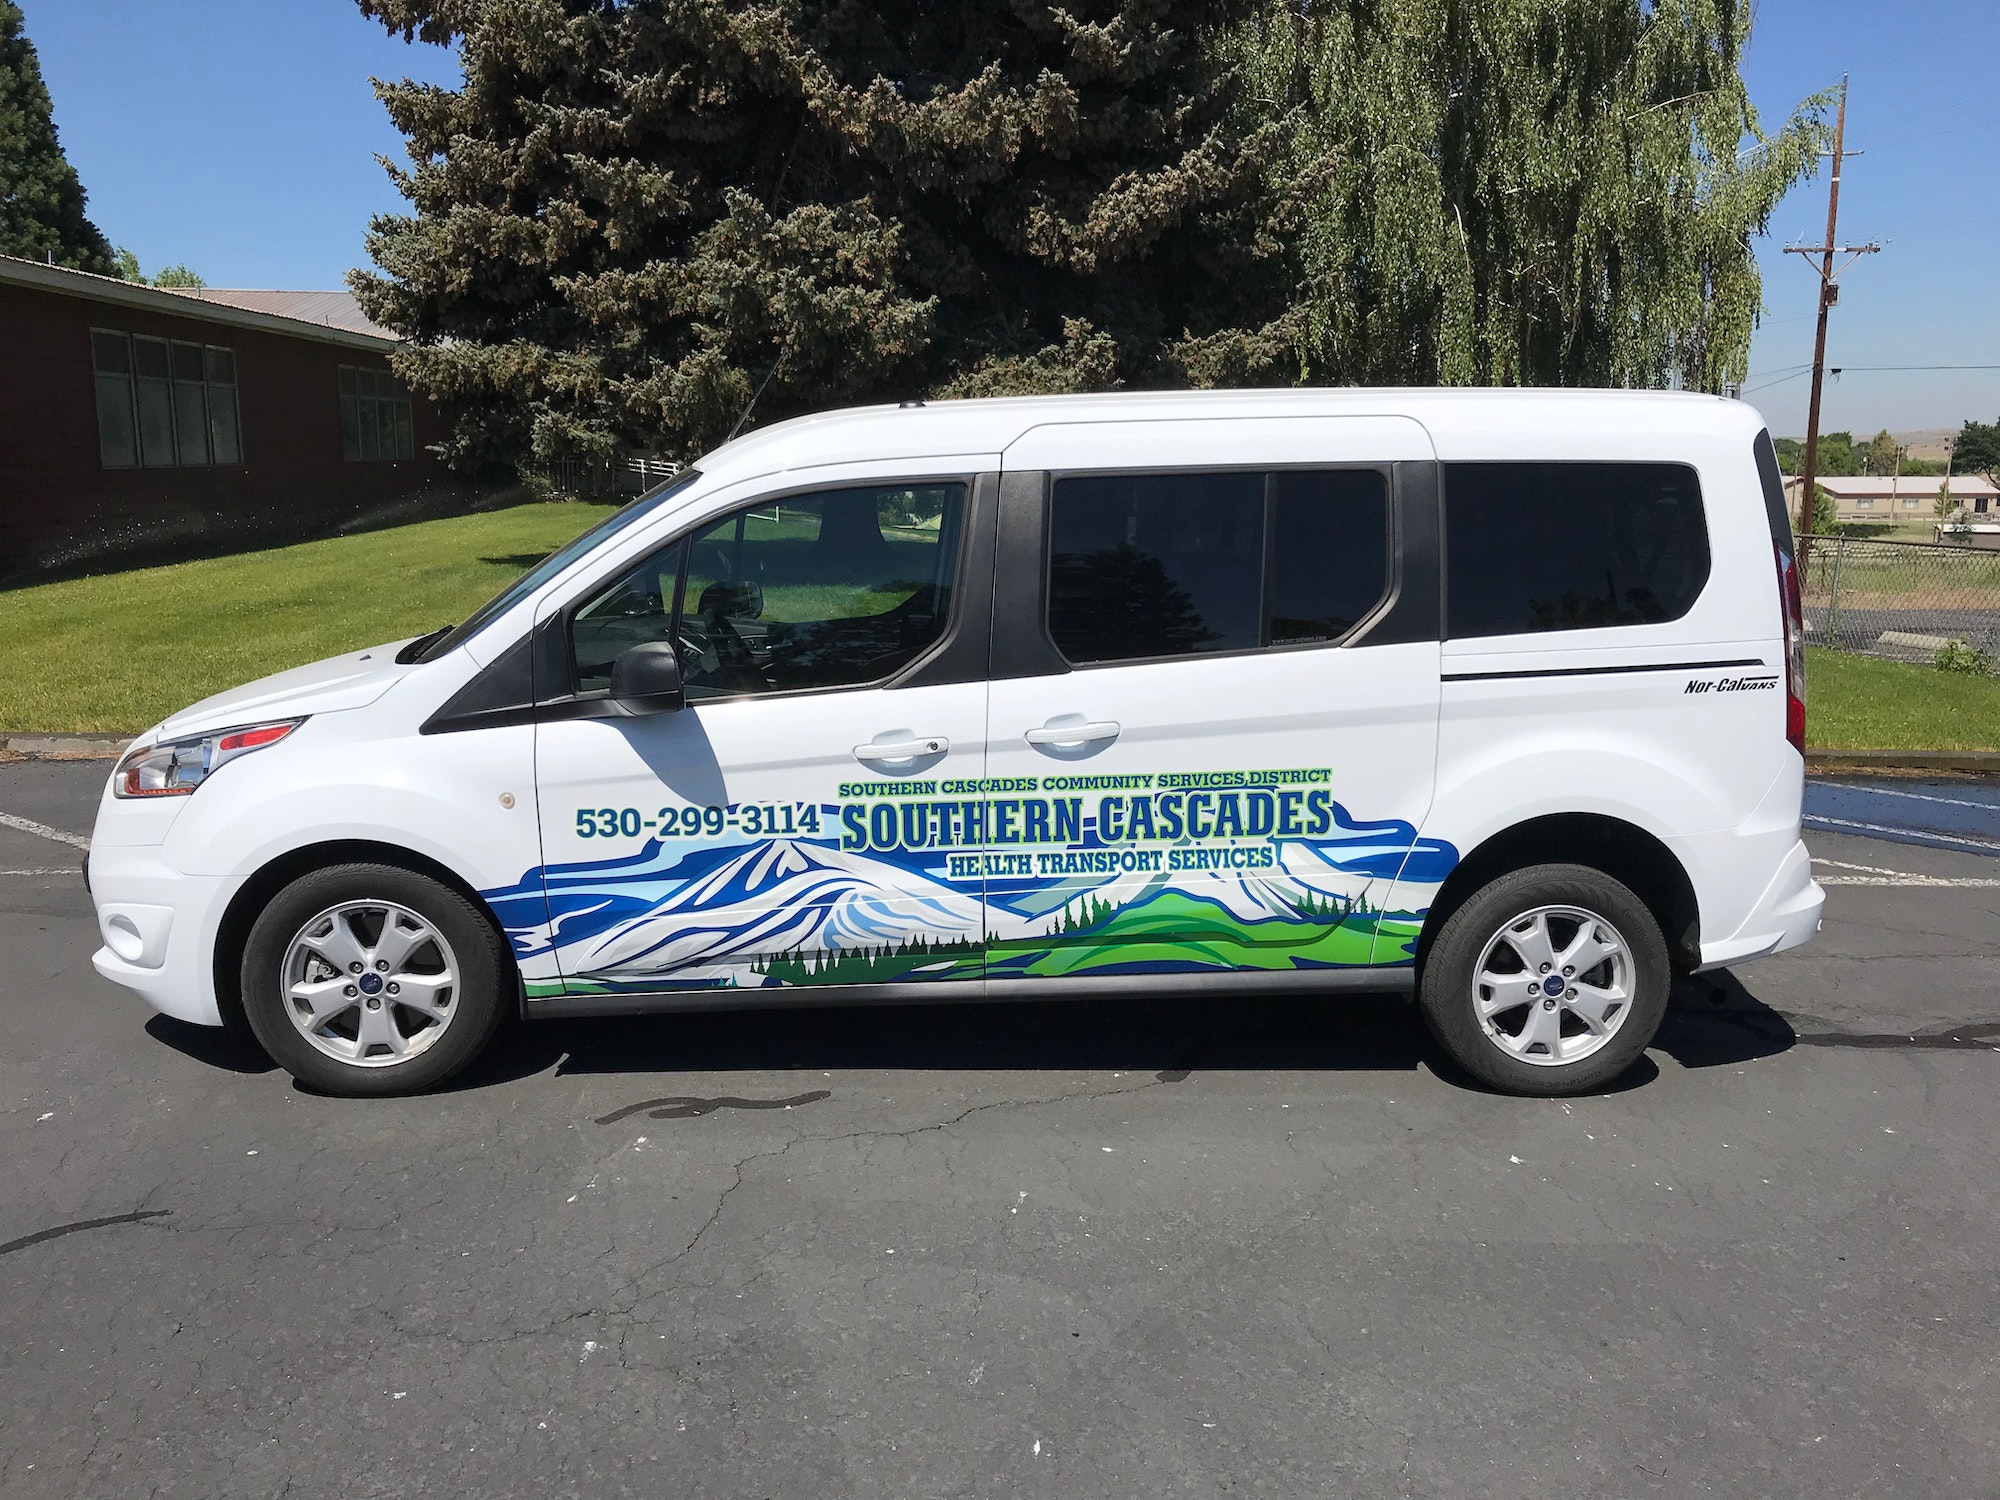 2016 Ford Transit Connect with Southern Cascades Logos